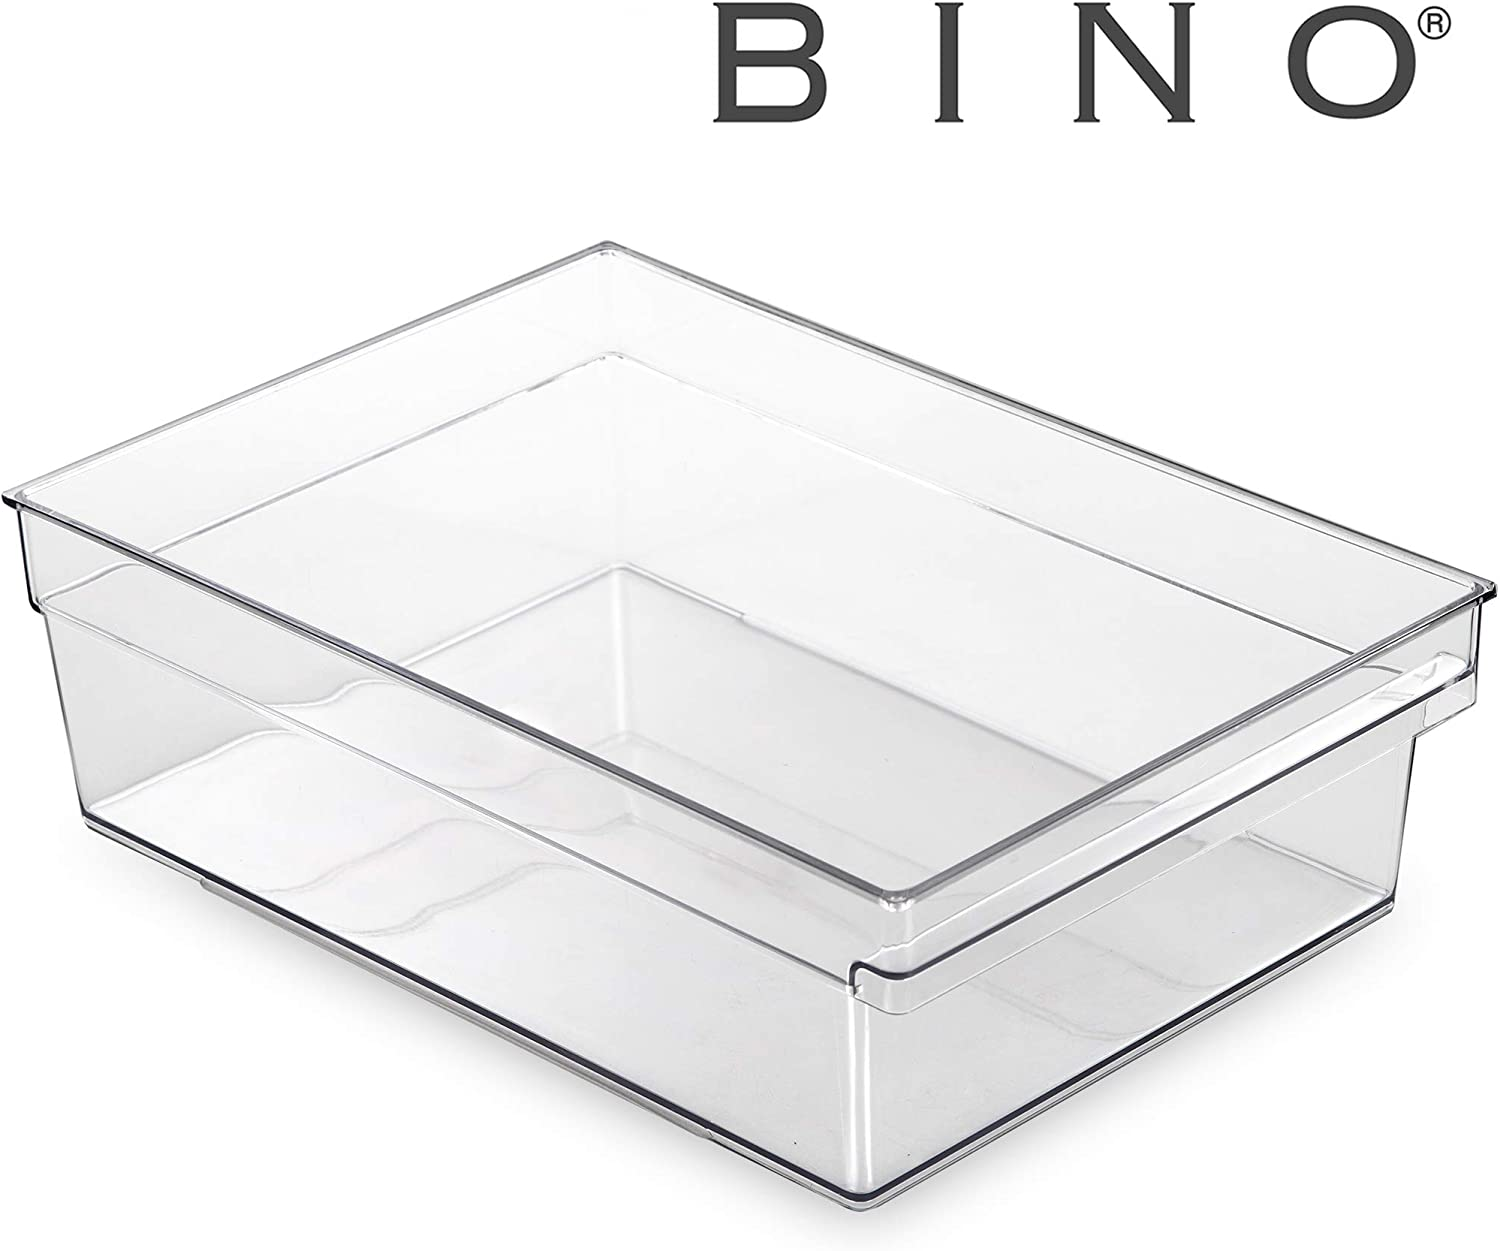 BINO Clear Plastic Storage Bin with Built-In Pull Out Handle - (Standard, X-Large) - Storage Bins for Home, Kitchen, and Bath - Refrigerator, Freezer, Cabinet, Closet, Pantry Organization and Storage